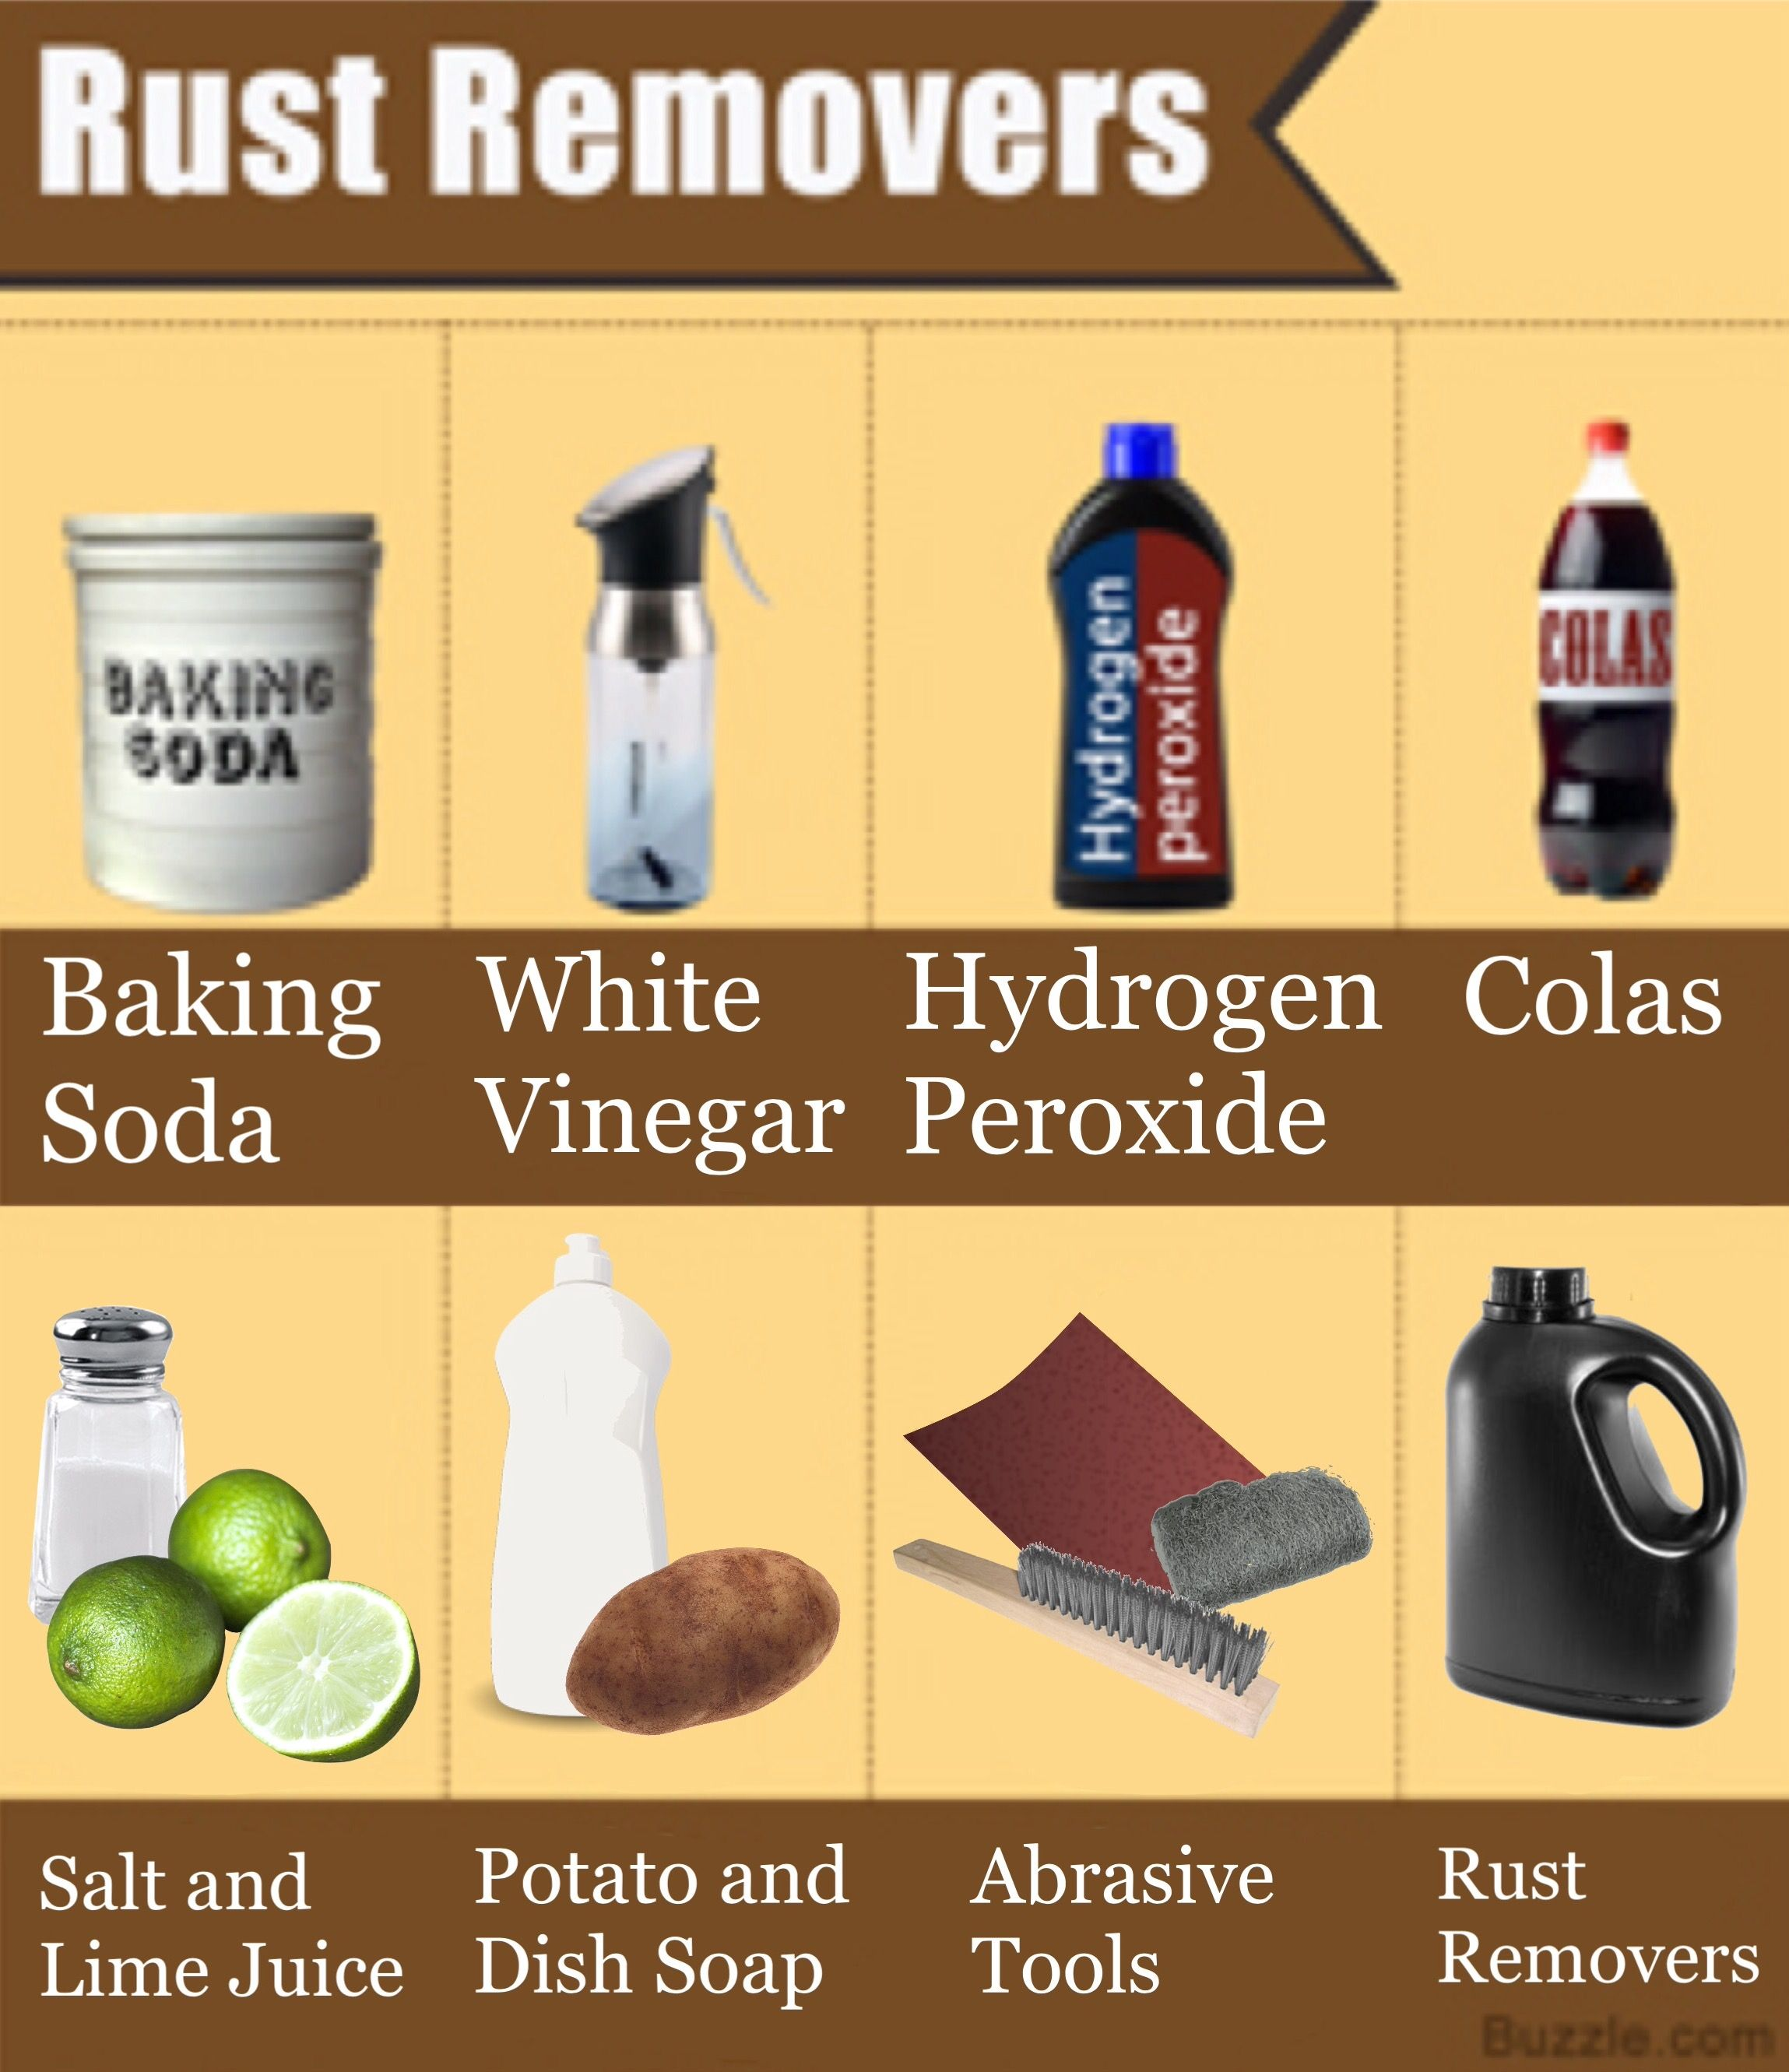 8 Ways Household Ings Can Be Used To Clean Rust Off Metal